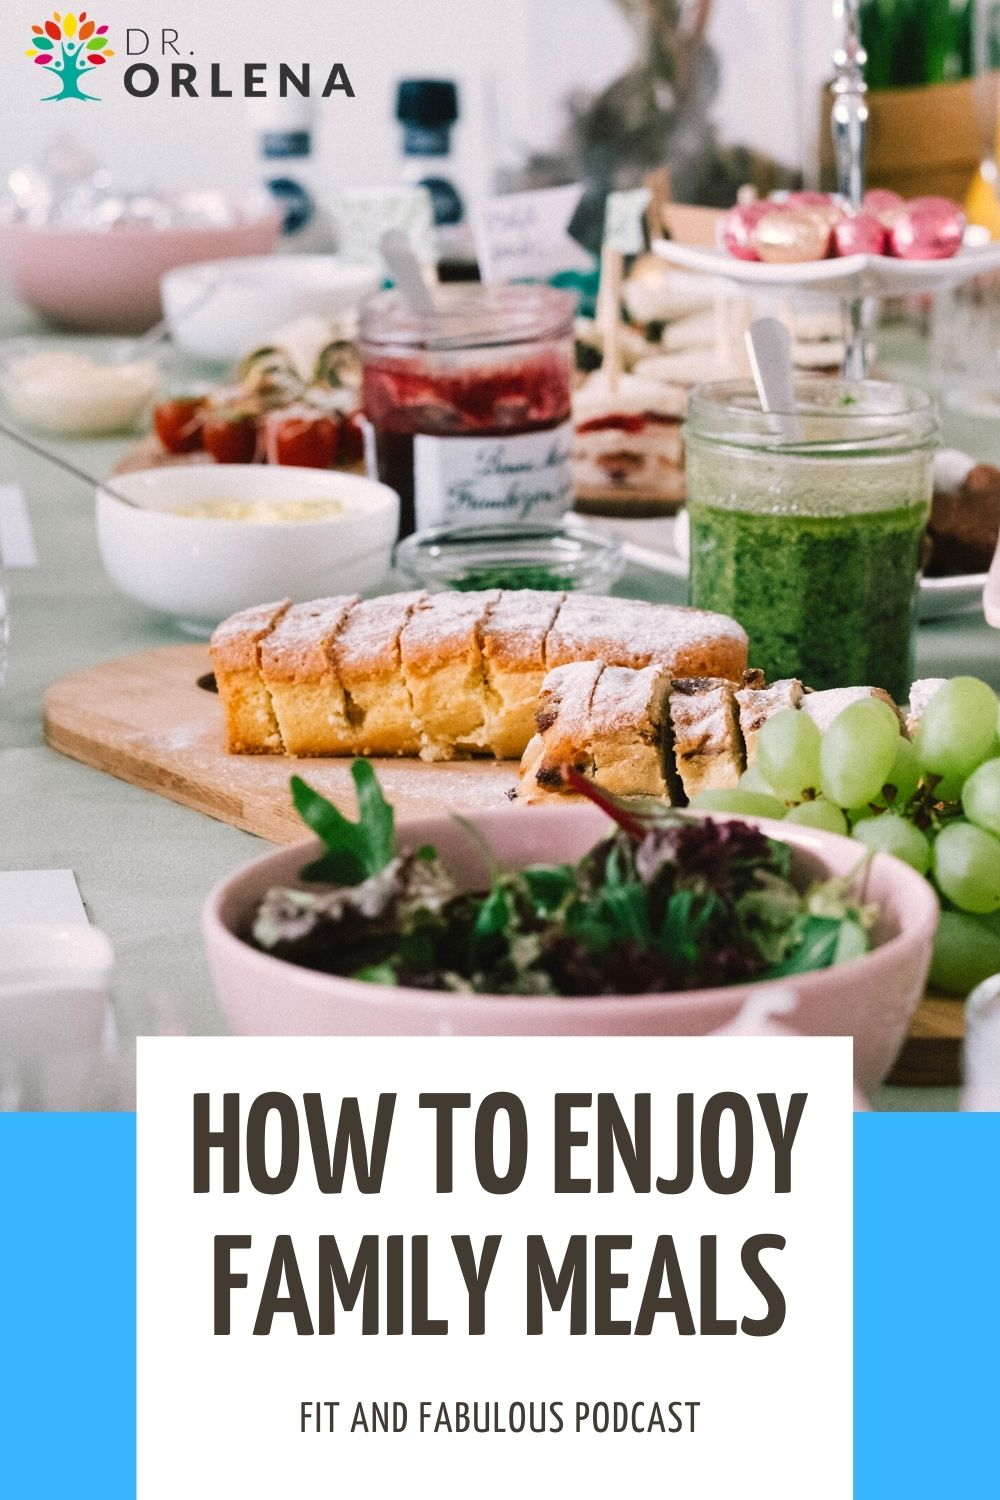 Photo of a table with healthy meals #family #healthy #mealtime #happymealtime #healthfamily